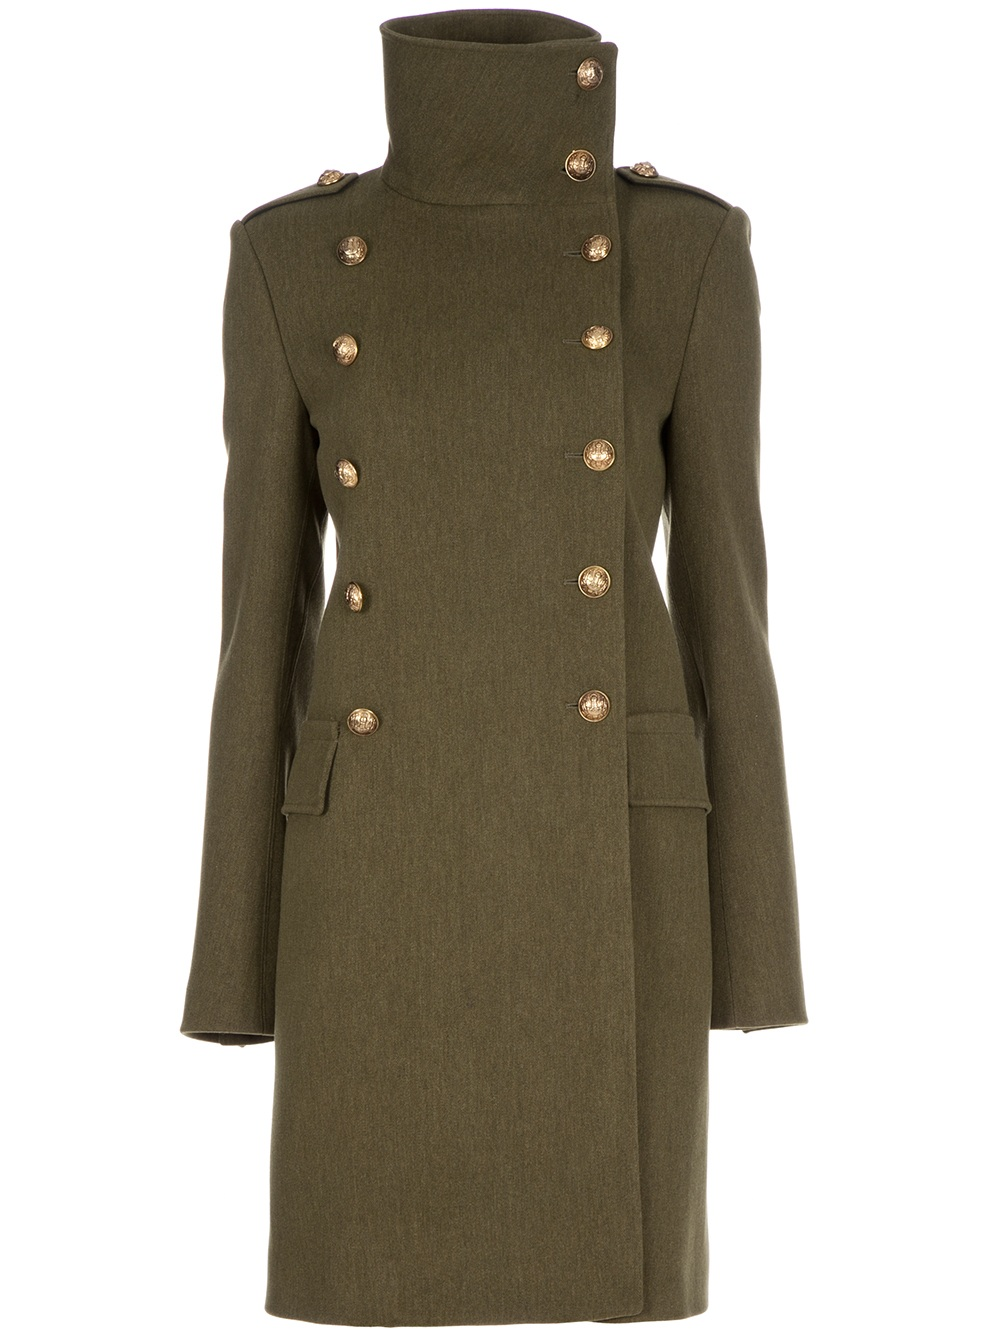 Balmain Double-breasted Coat in Green (army)